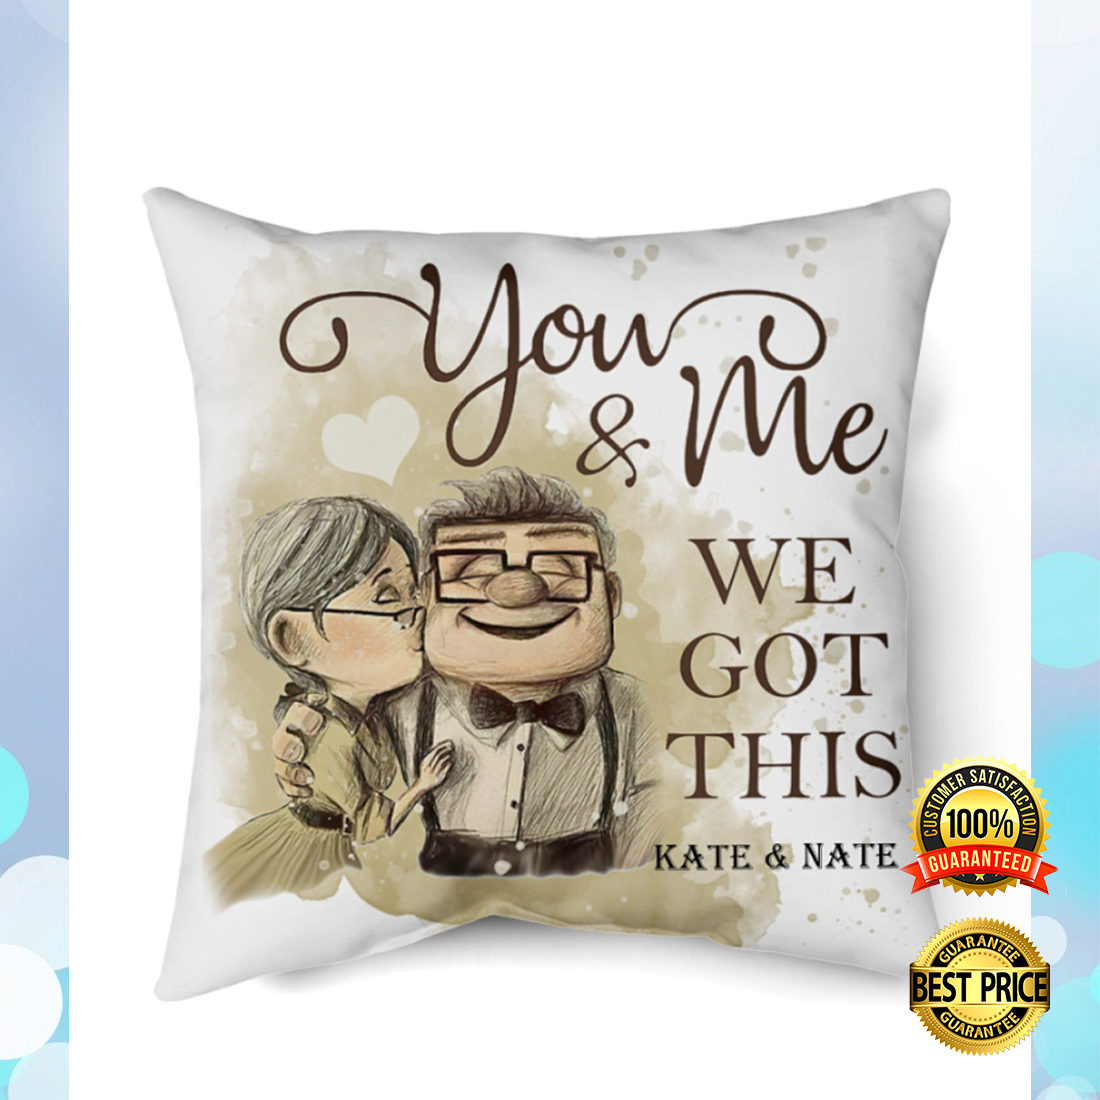 Personalized Up you and me we got this pillow 4